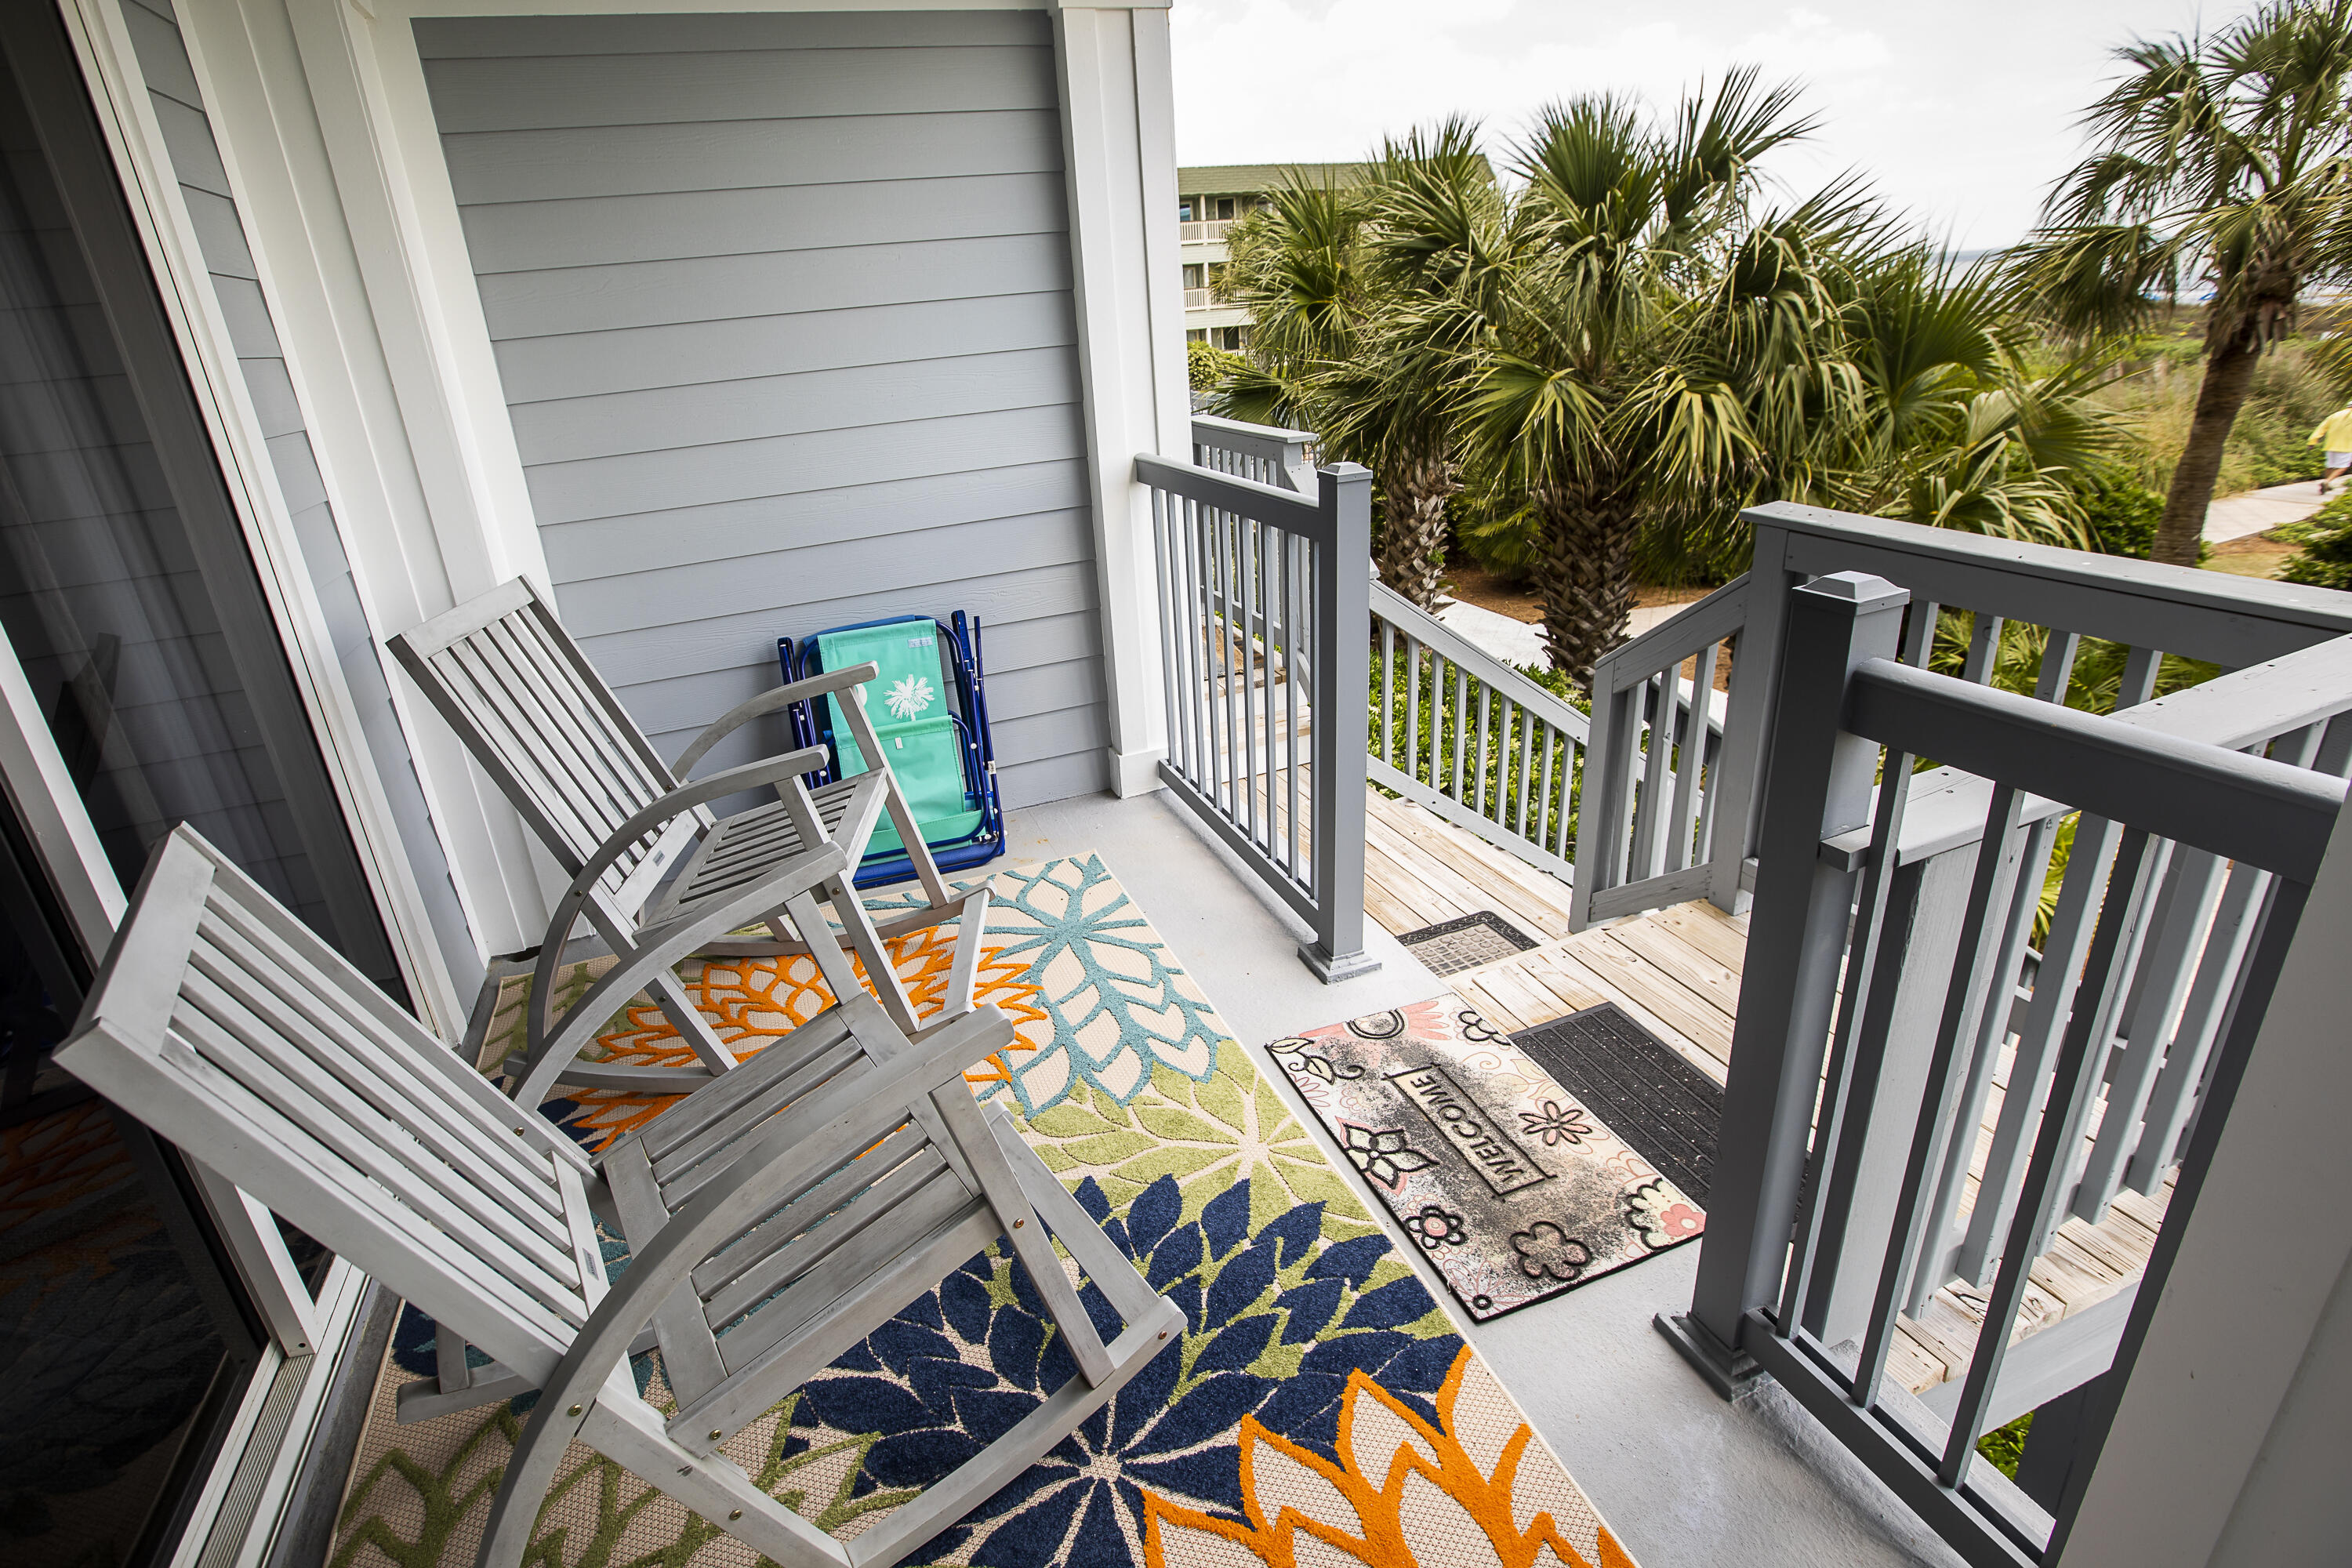 Isle of Palms Homes For Sale - 1140 Ocean, Isle of Palms, SC - 6